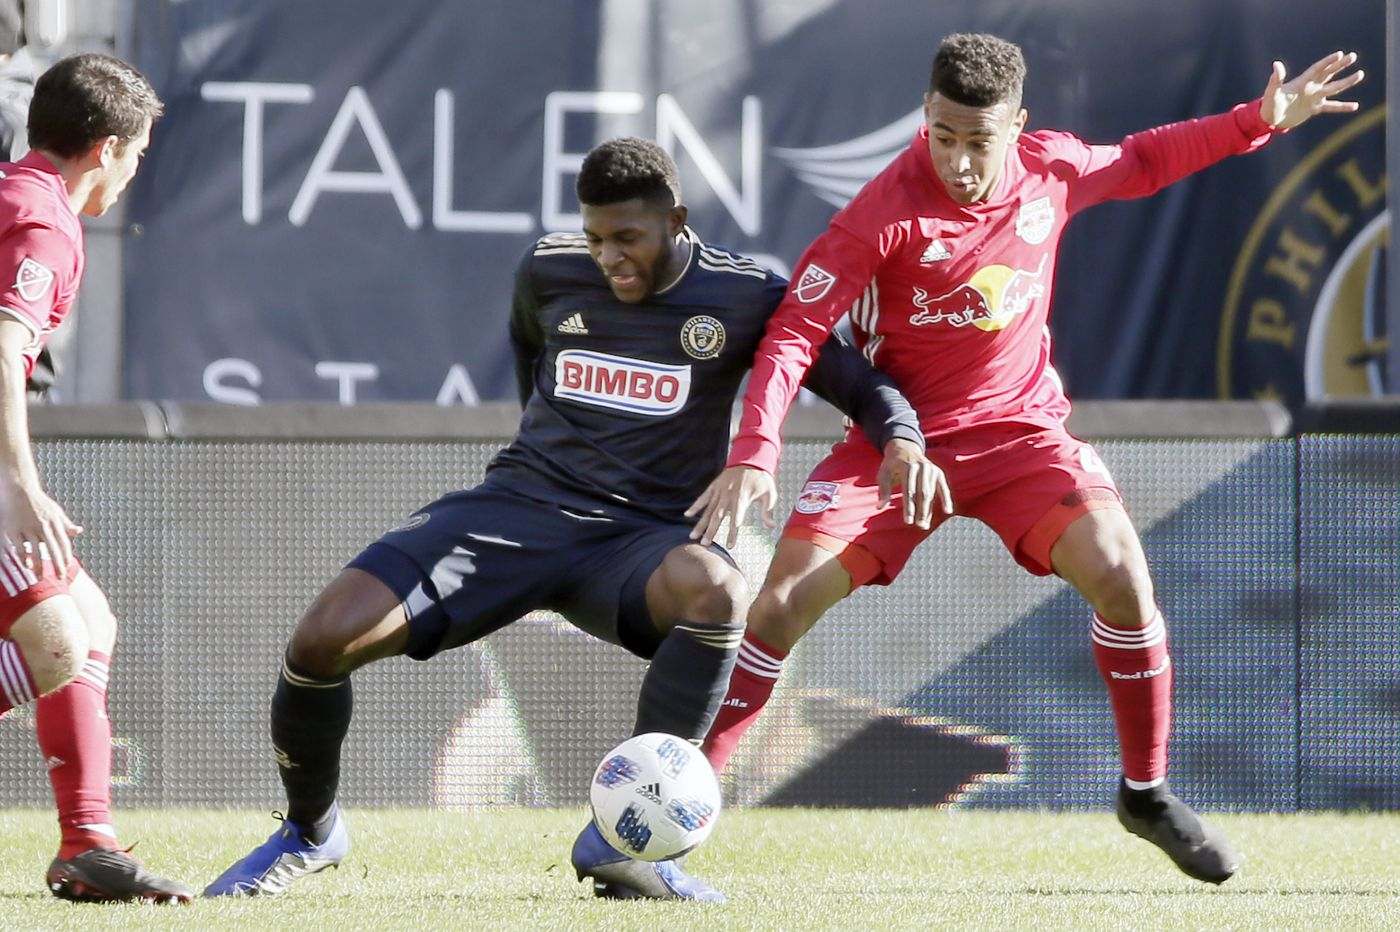 Union may try to stop Mark McKenzie from playing for U.S. national team at Under-20 World Cup